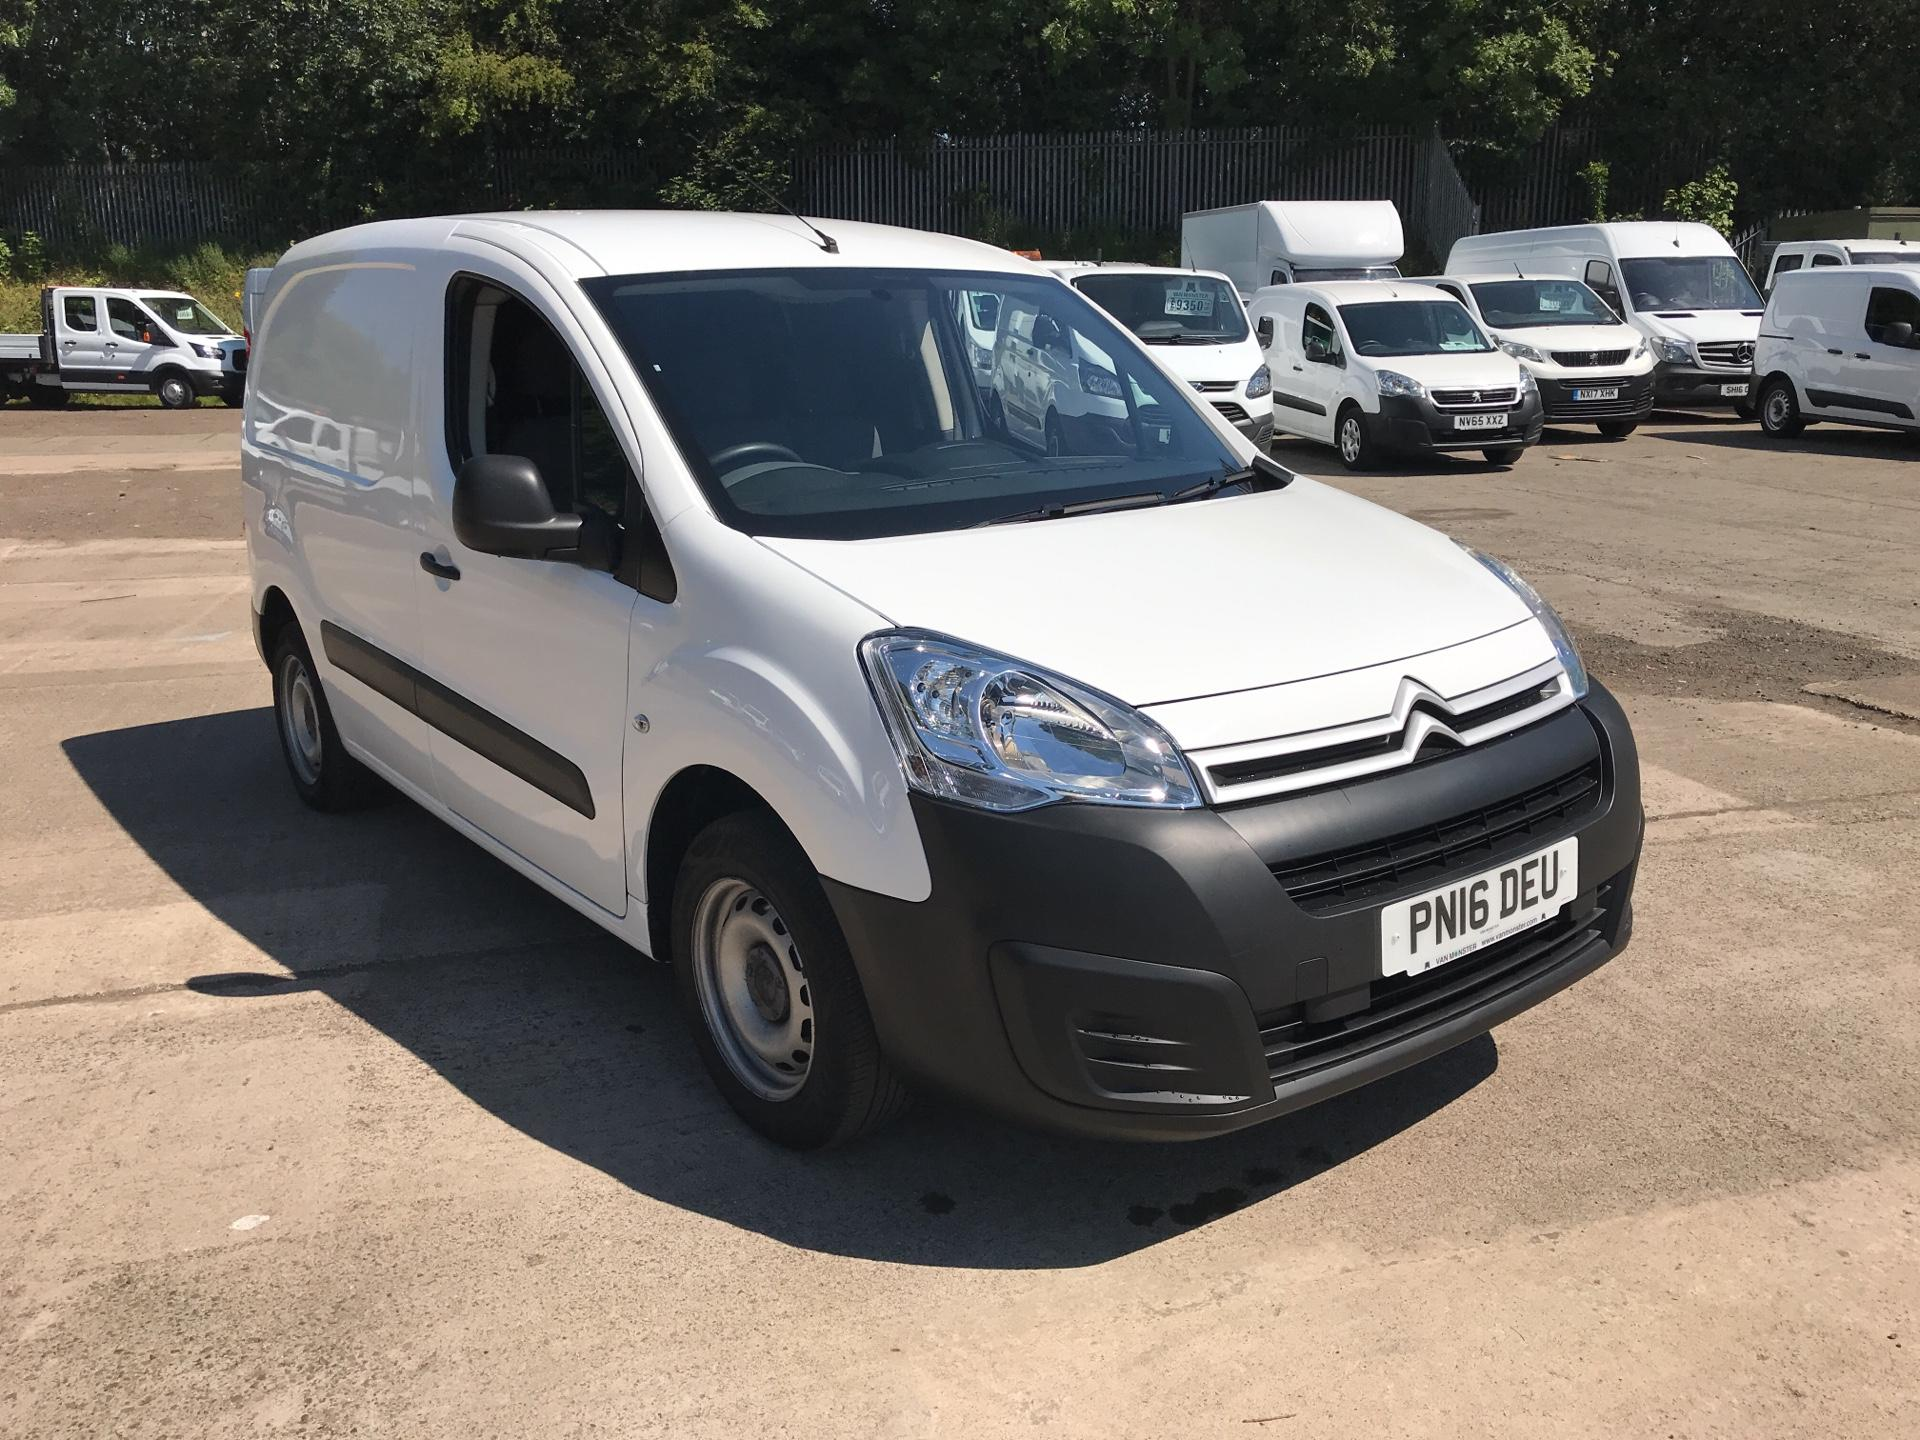 2016 Citroen Berlingo 1.6 Hdi 625Kg Lx 75Ps (PN16DEU)